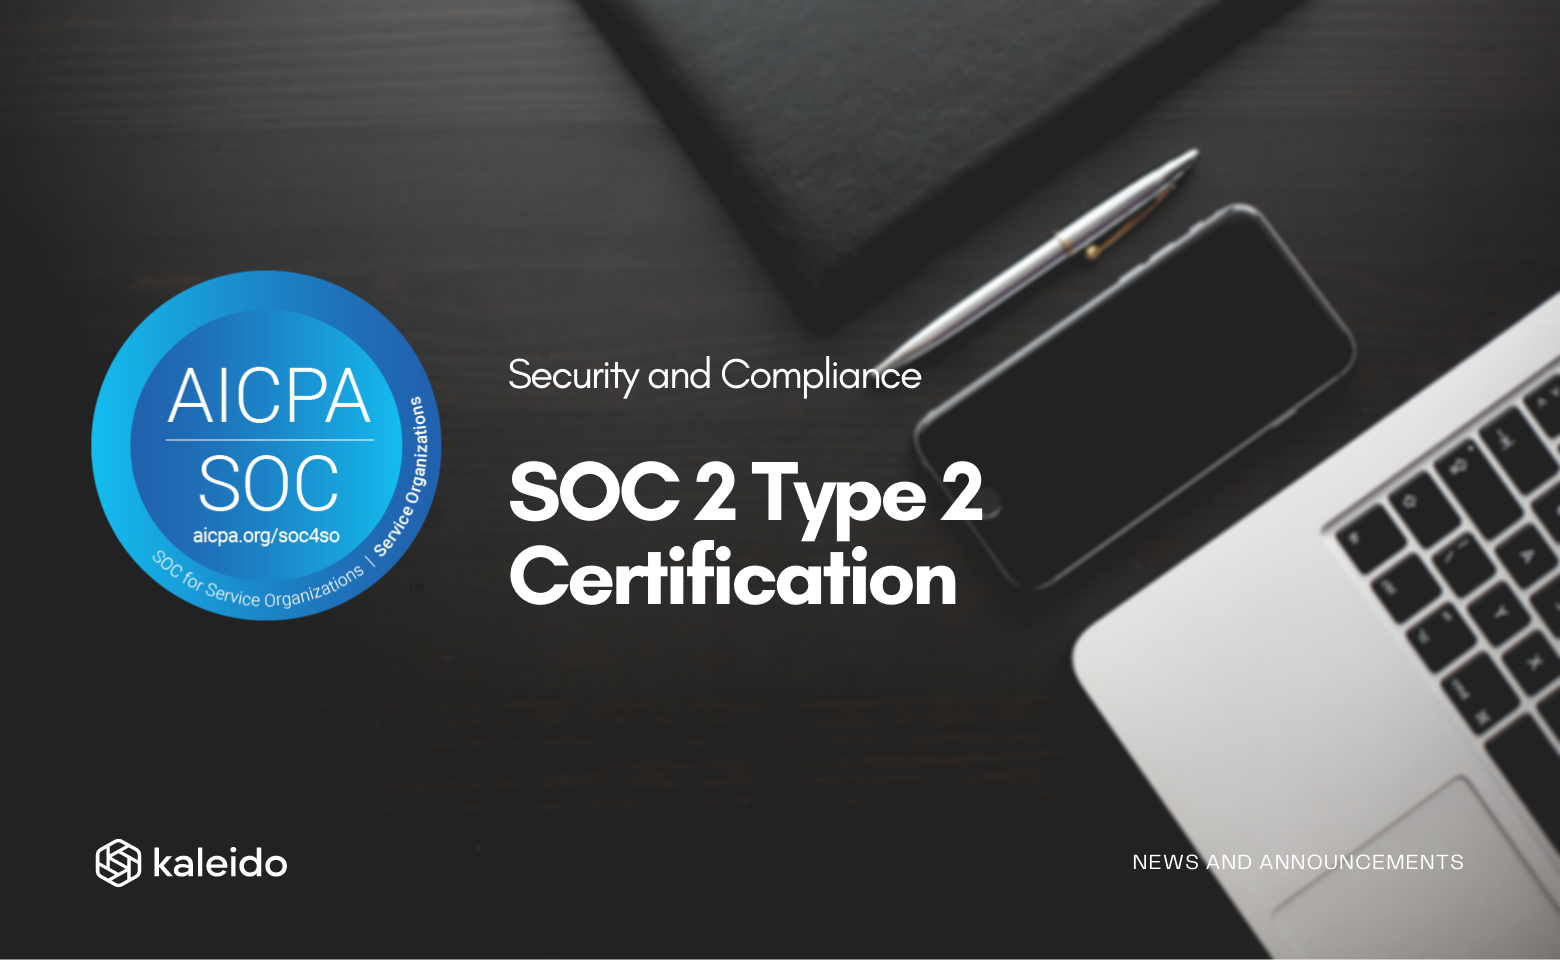 Kaleido Achieves SOC 2 Type 2 Certification